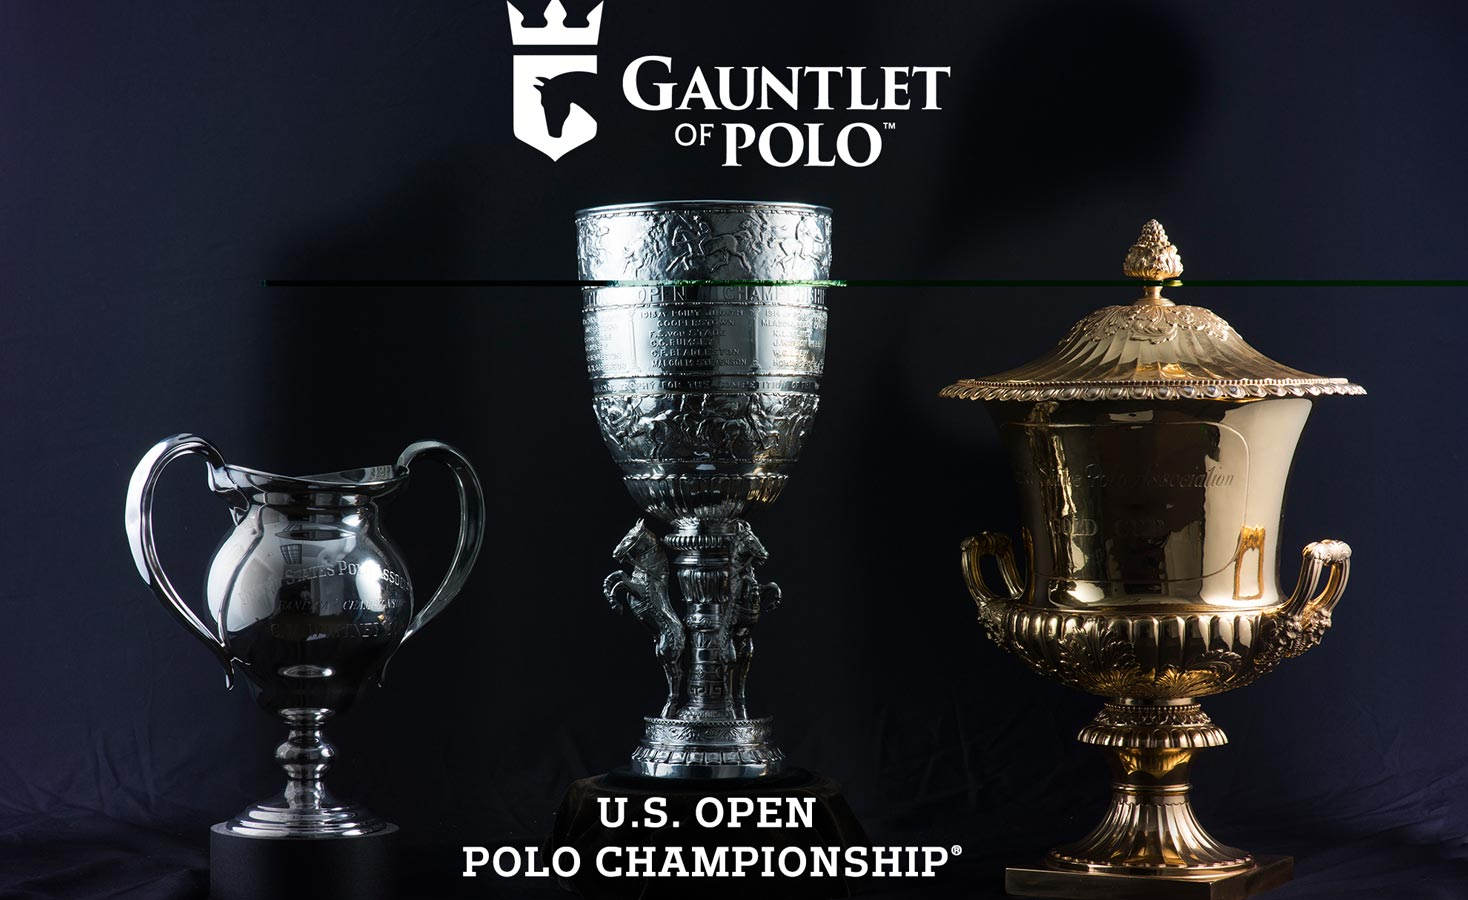 Gauntlet of polo